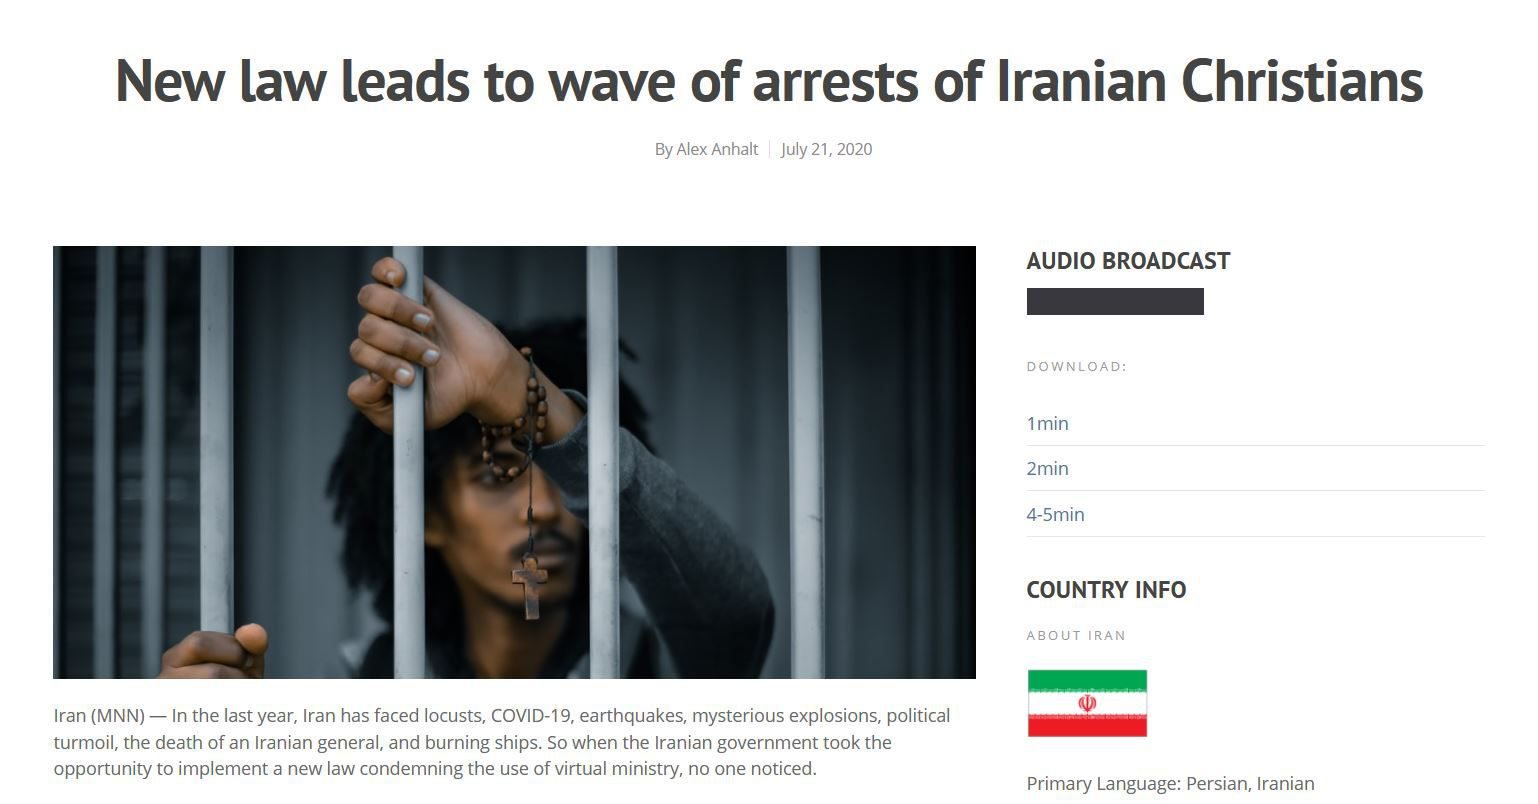 https://www.mnnonline.org/news/new-law-leads-to-wave-of-arrests-of-iranian-christians/